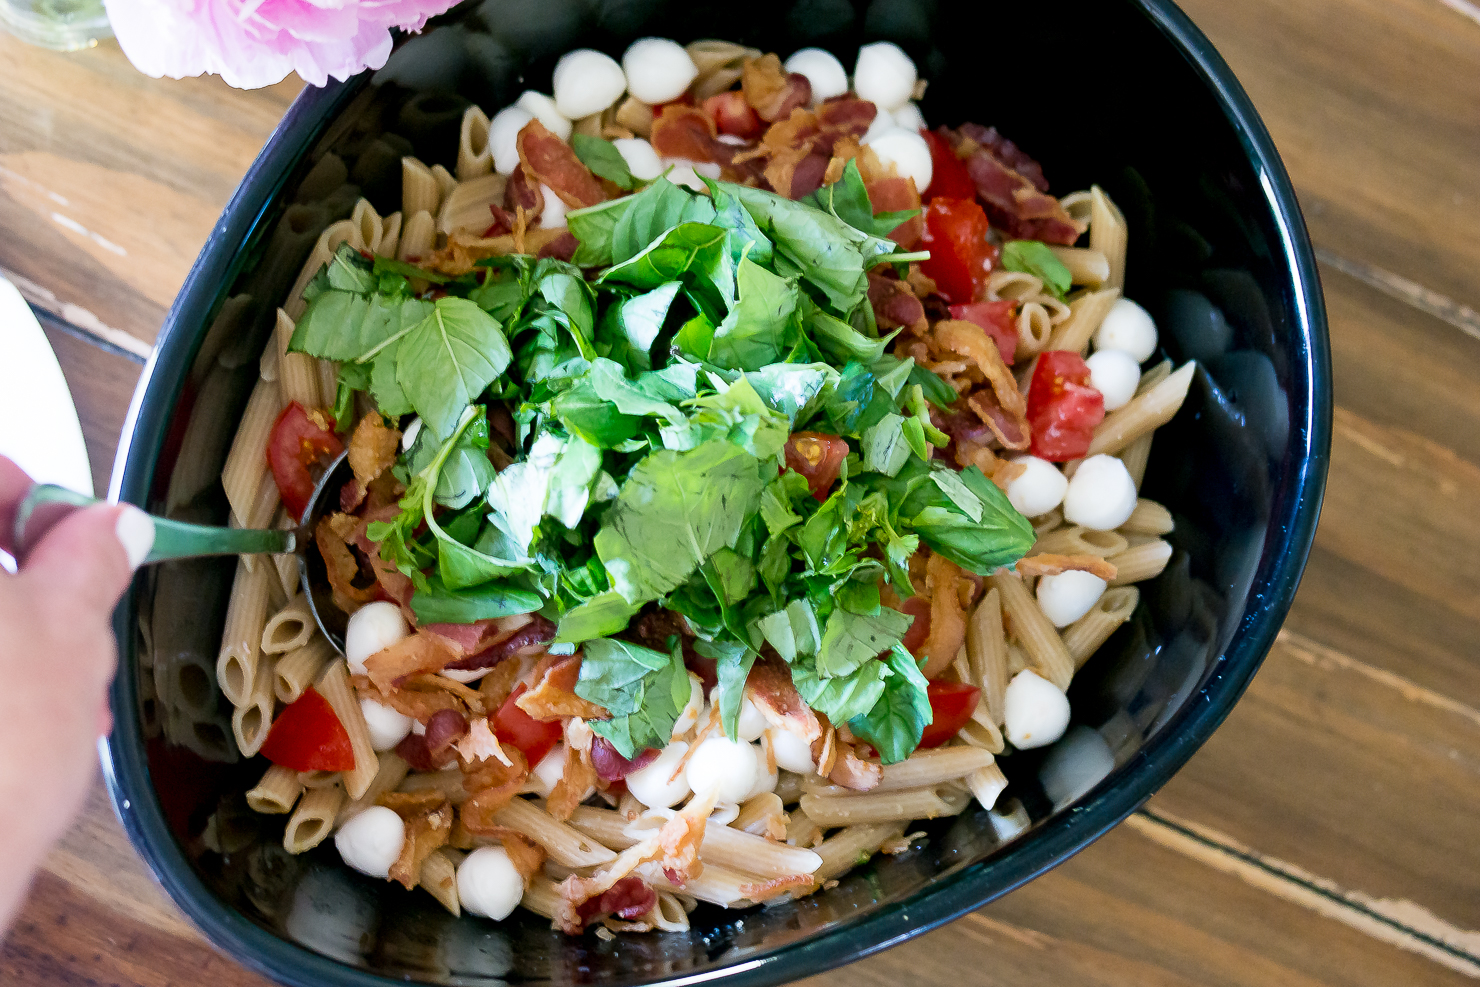 tomato-basil-bacon-mozzarella-summer-pasta-salad-with-garlicy-dressing